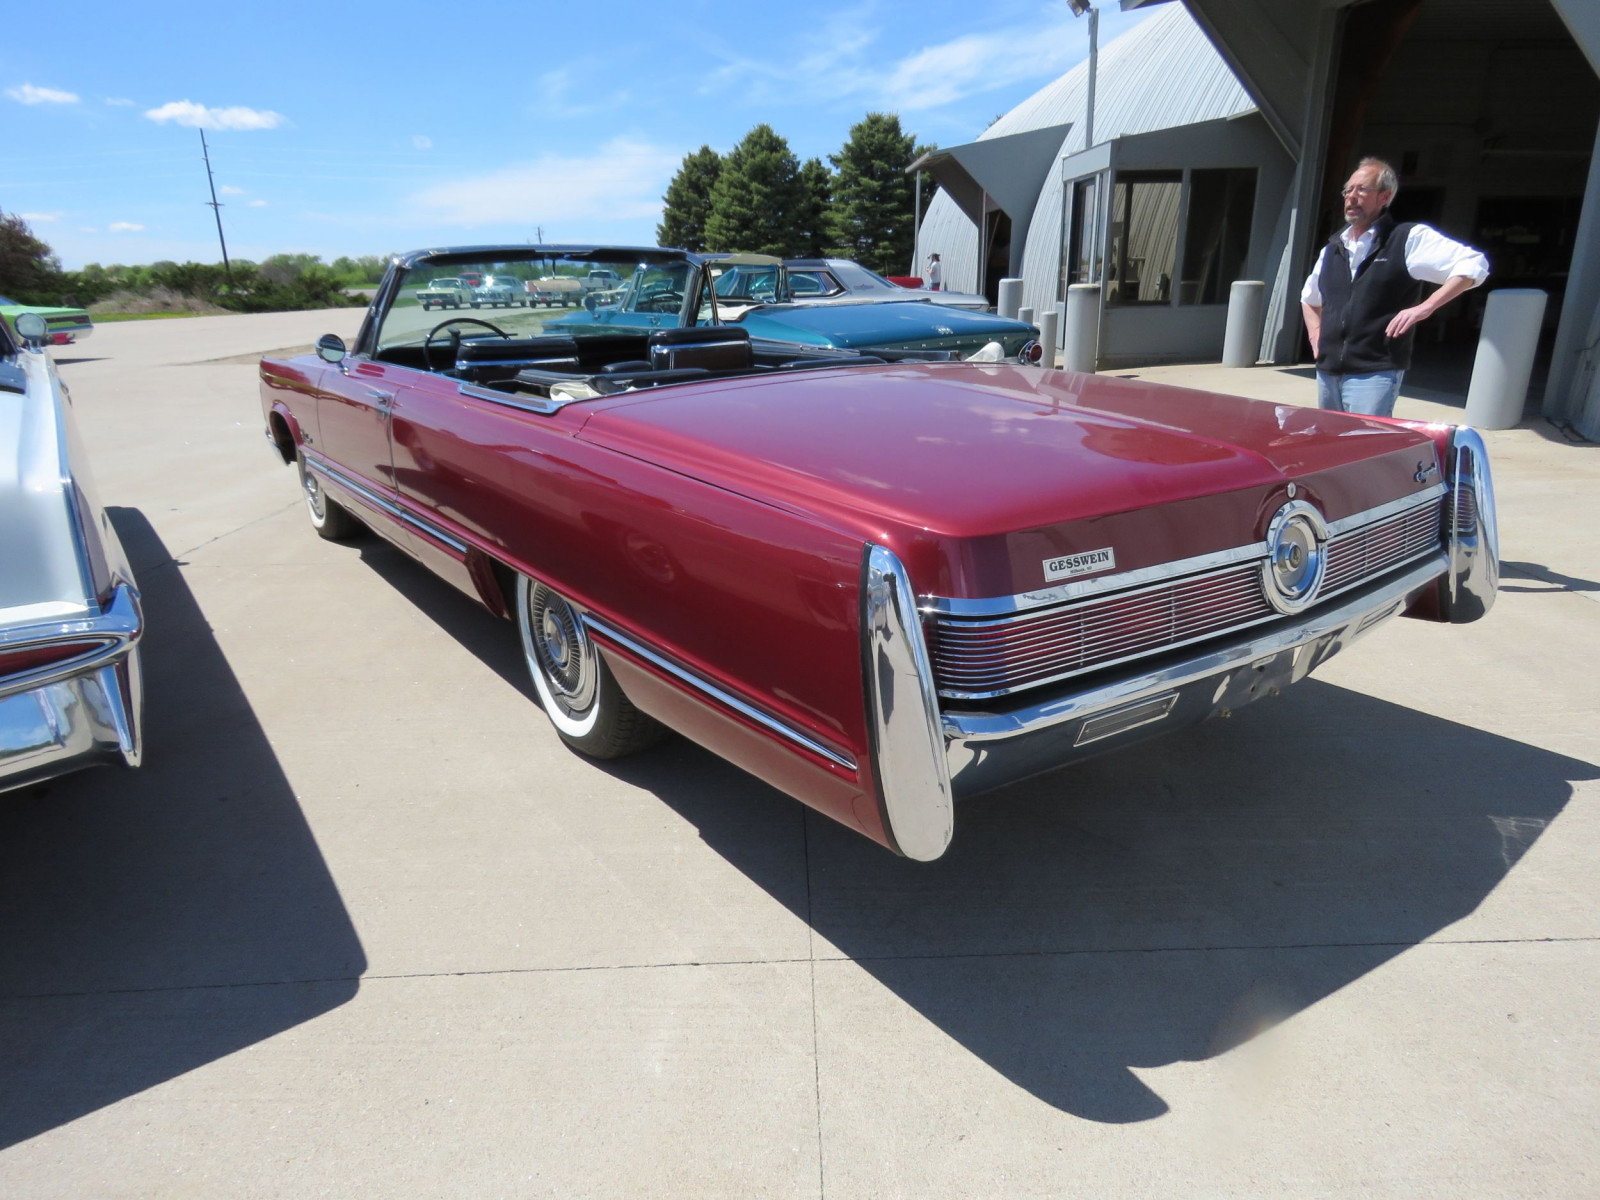 1967 Chrysler Imperial Convertible - Image 8